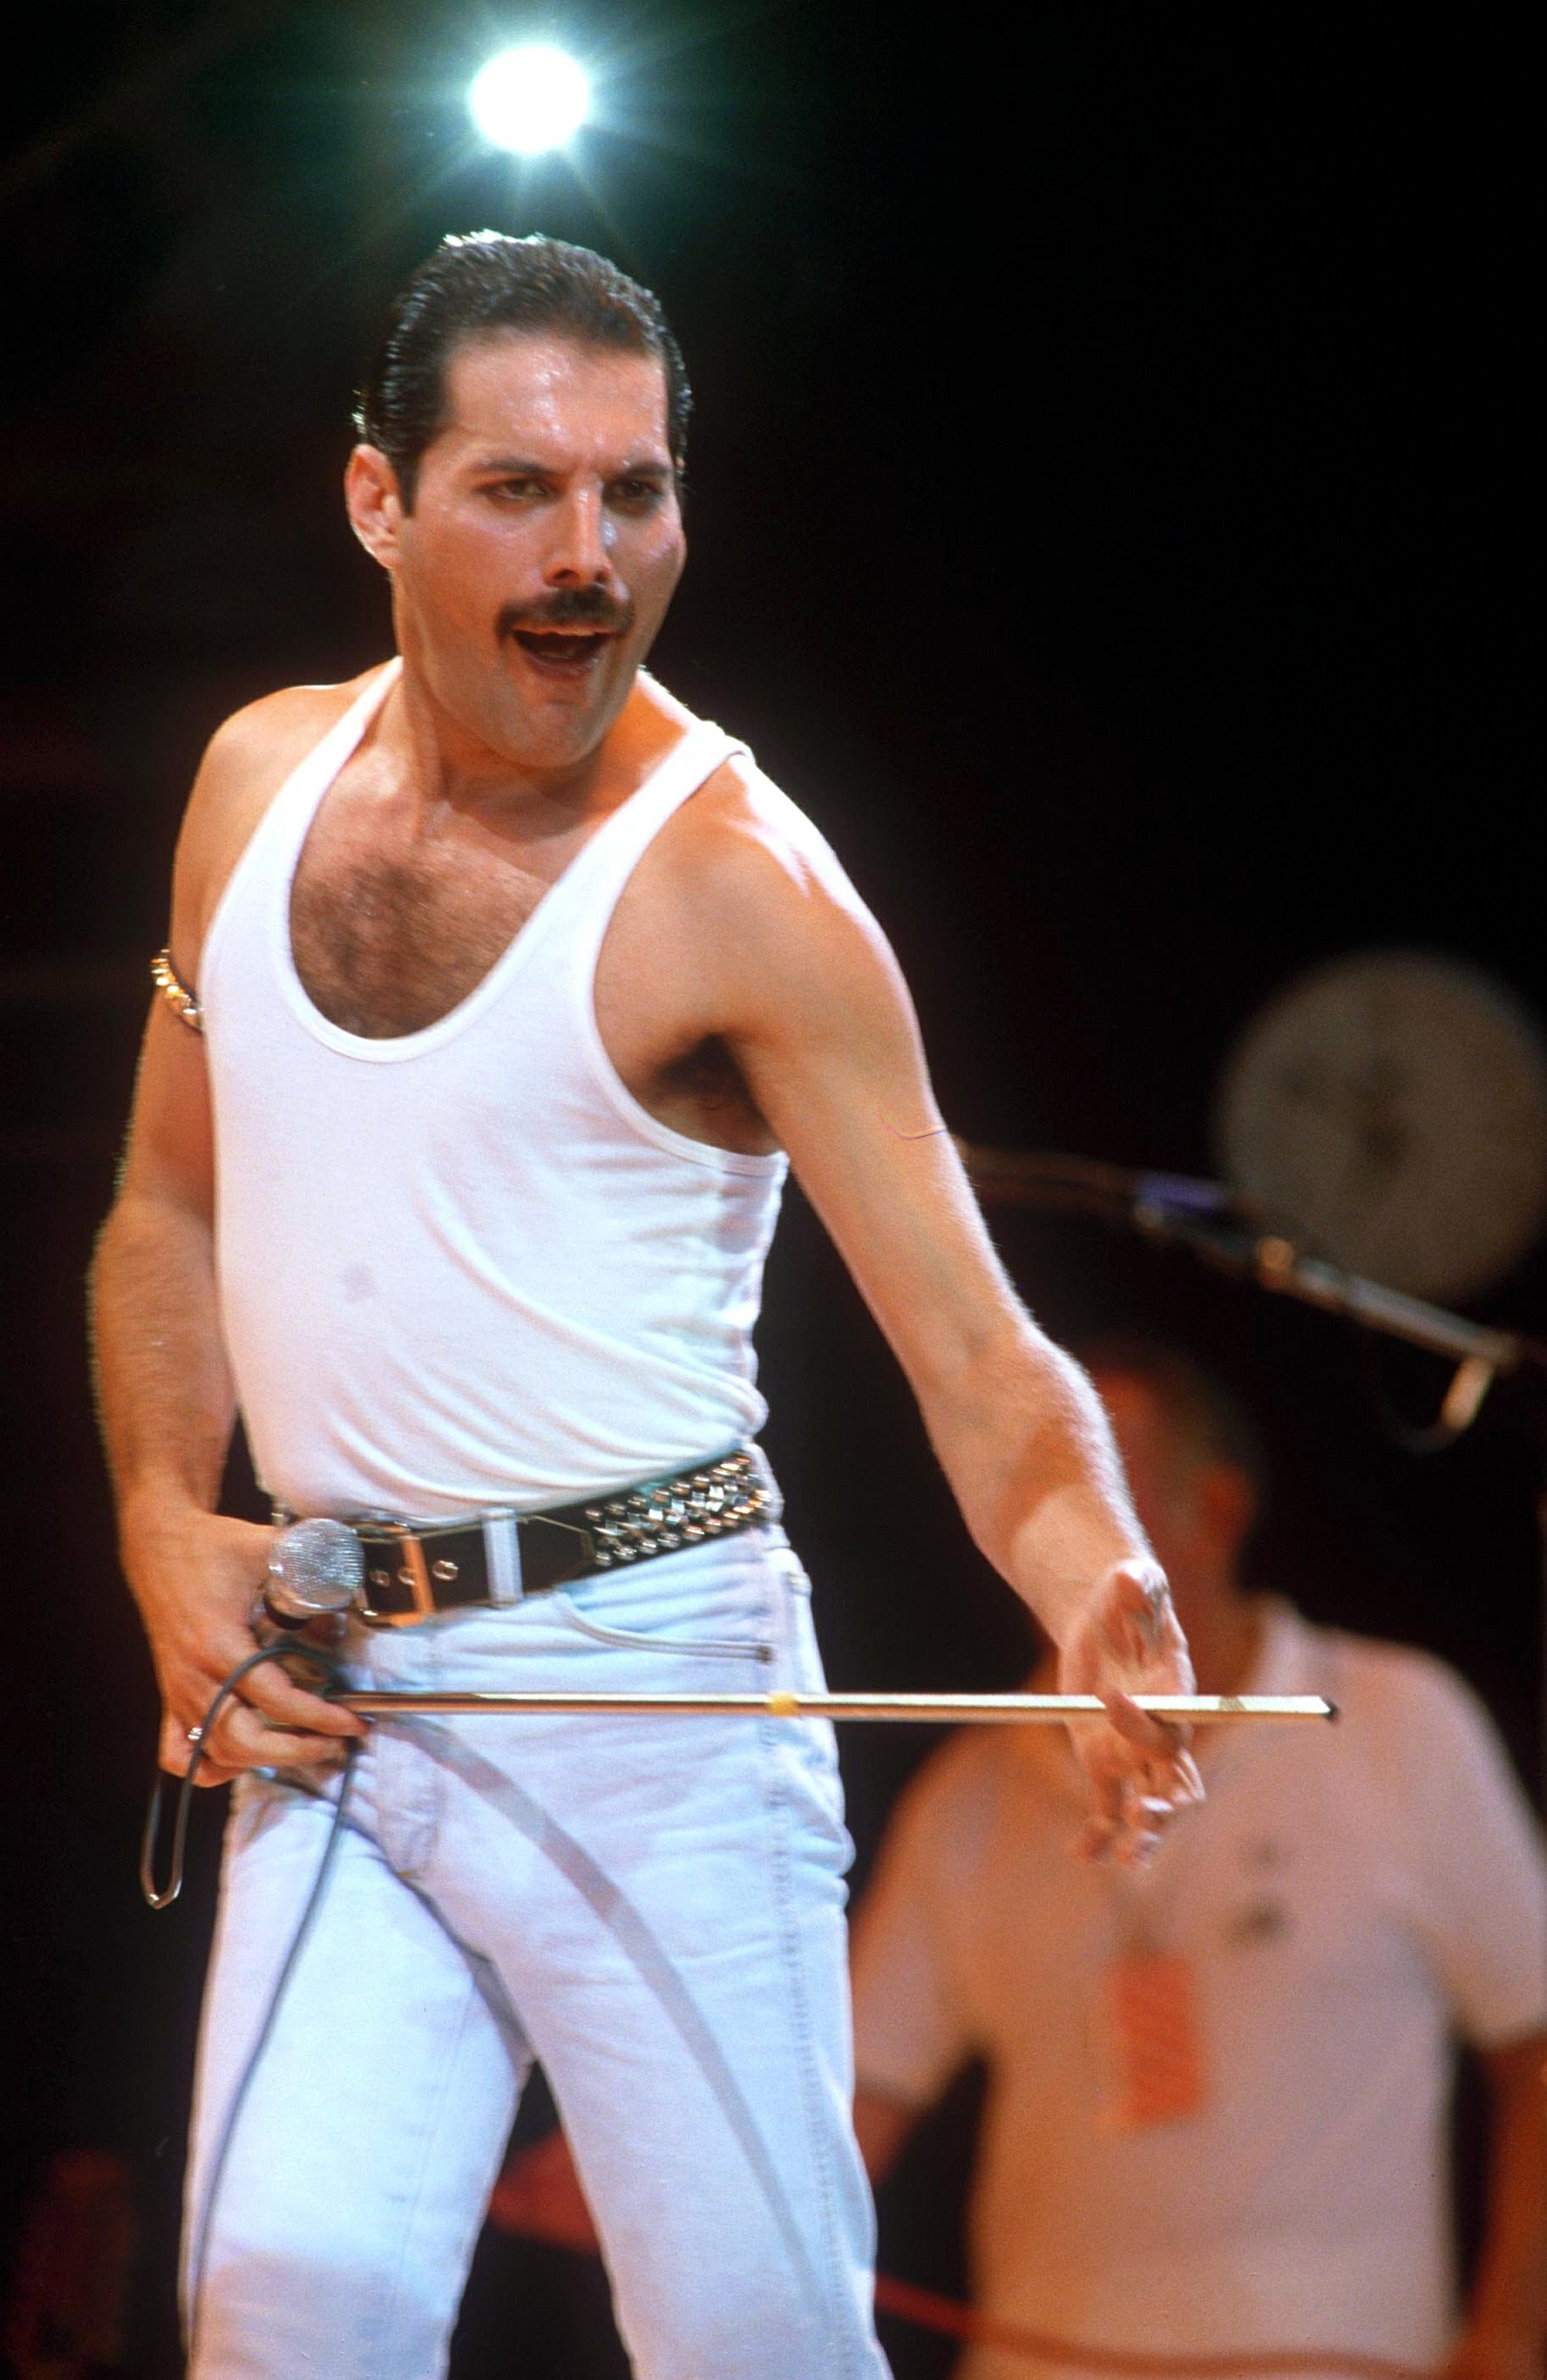 freddie mercury - photo #1